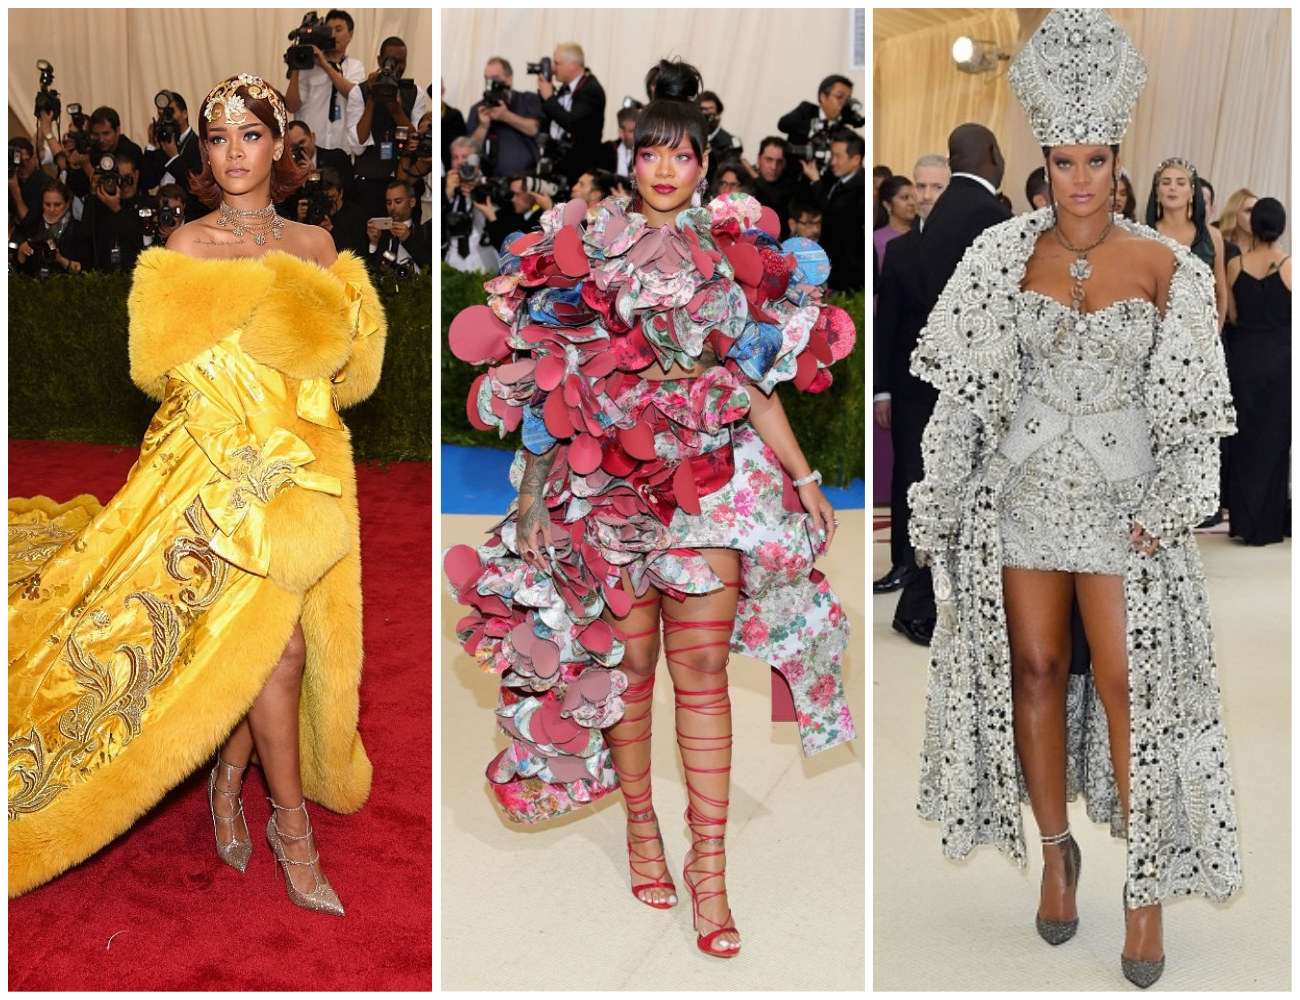 Rihanna Talked About New Luxury Fashion Line And Making